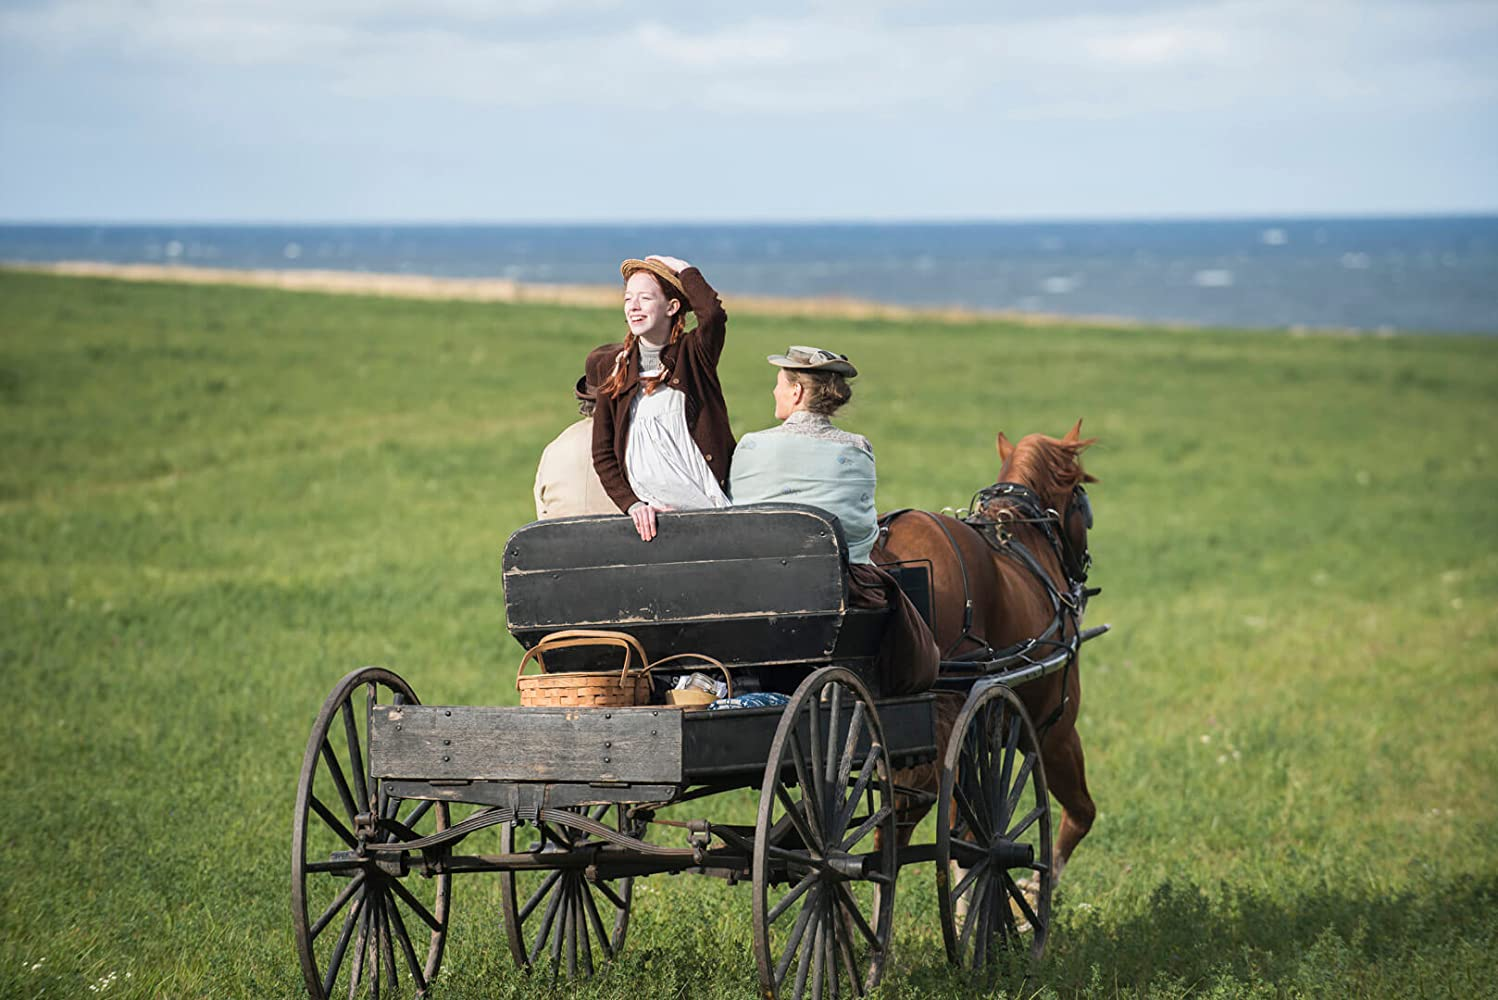 Geraldine James, R.H. Thomson, and Amybeth McNulty in Anne (2017)